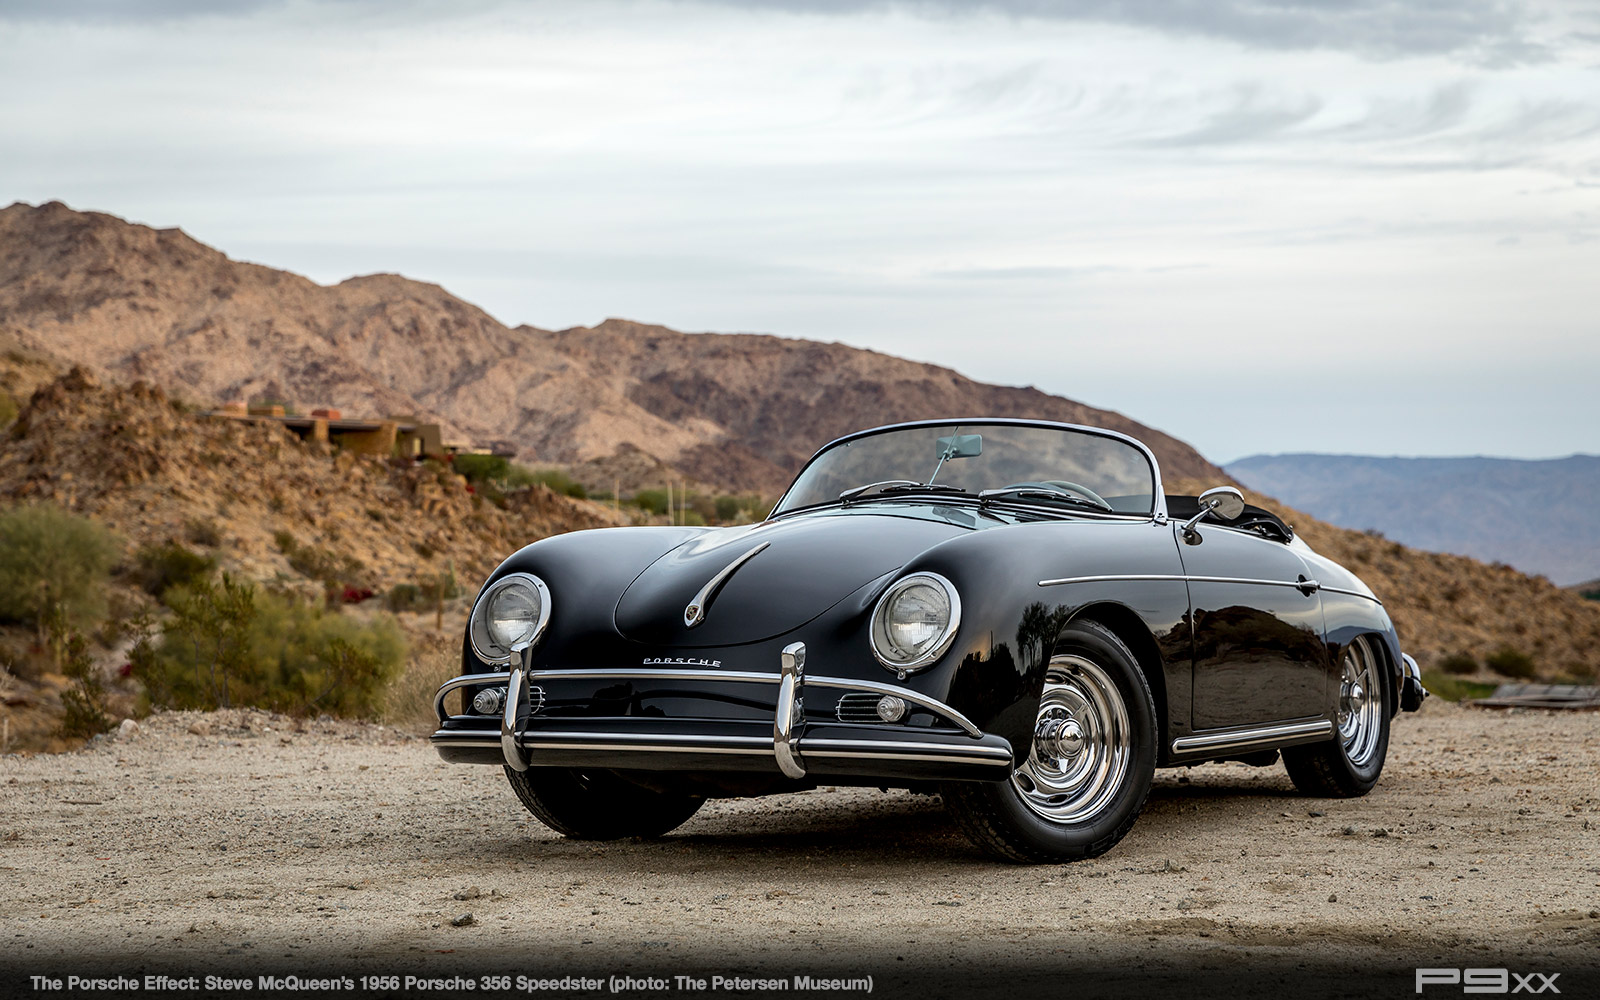 1956-Steve-McQueen-Chad-356-Speedster-Petersen-Automotive-Museum-The-Porsche-Effect-335